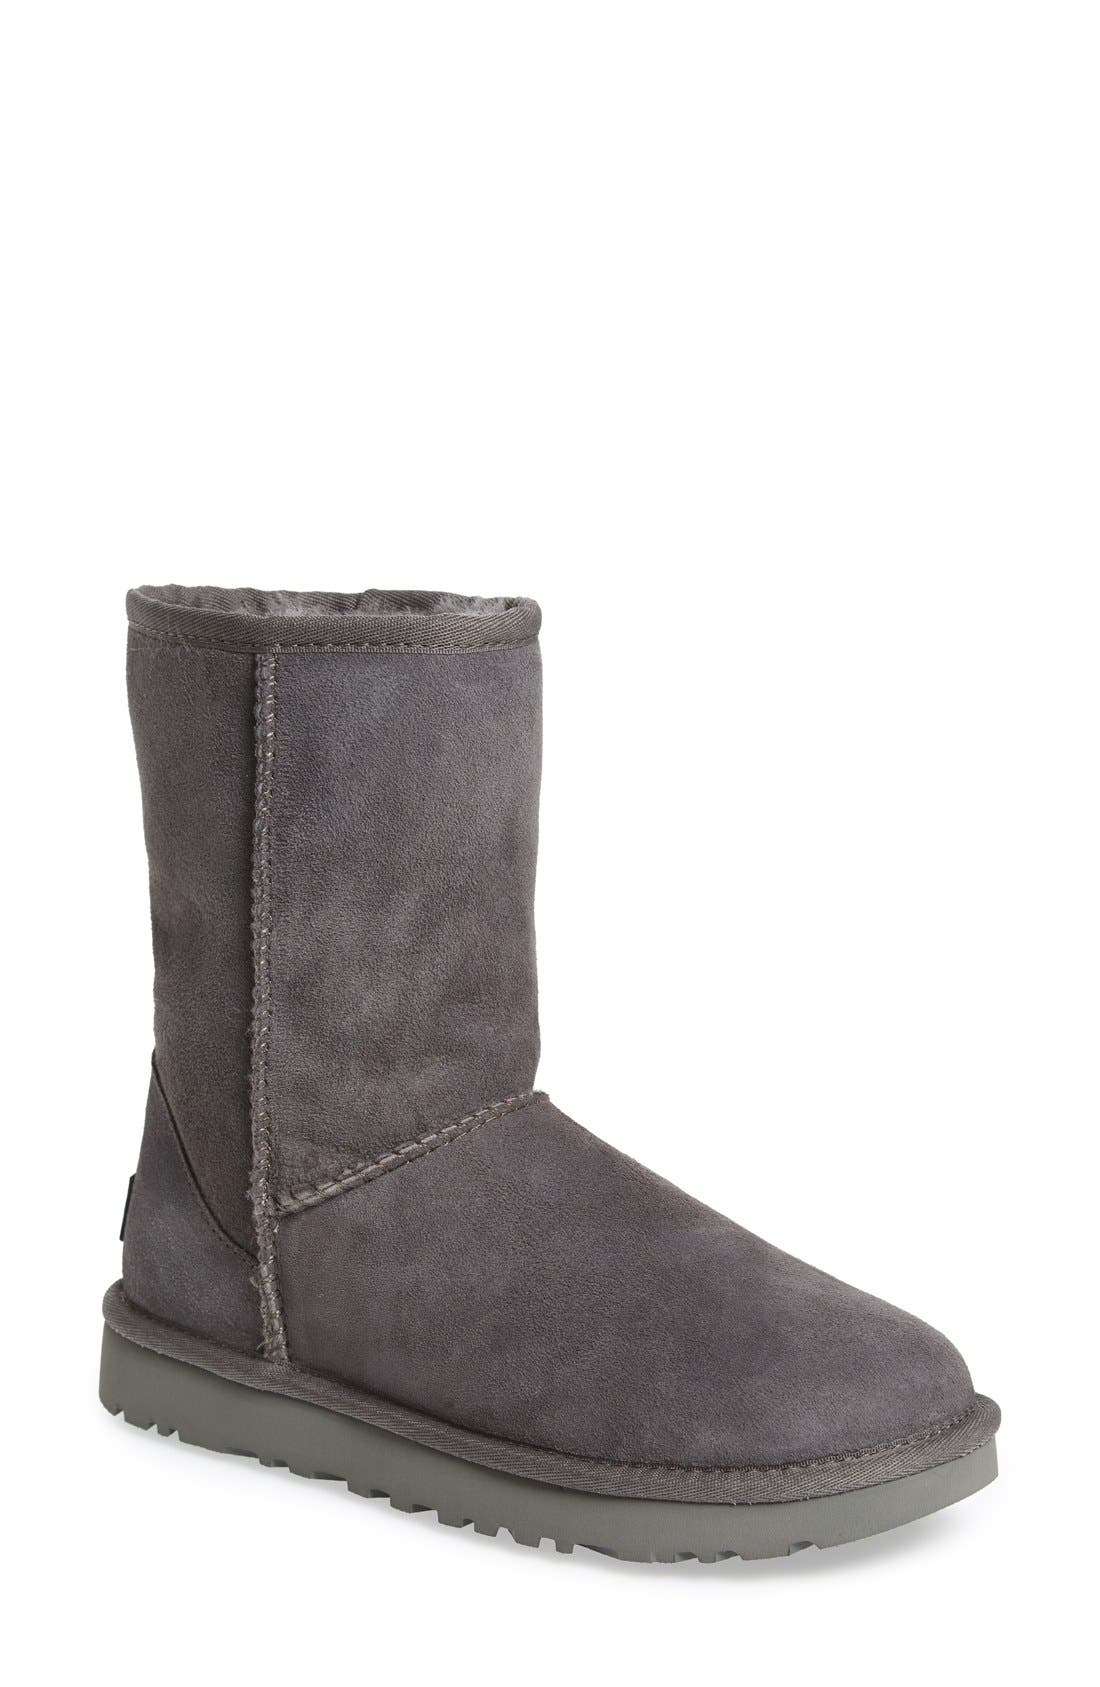 'Classic II' Genuine Shearling Lined Short Boot,                         Main,                         color, Grey Suede